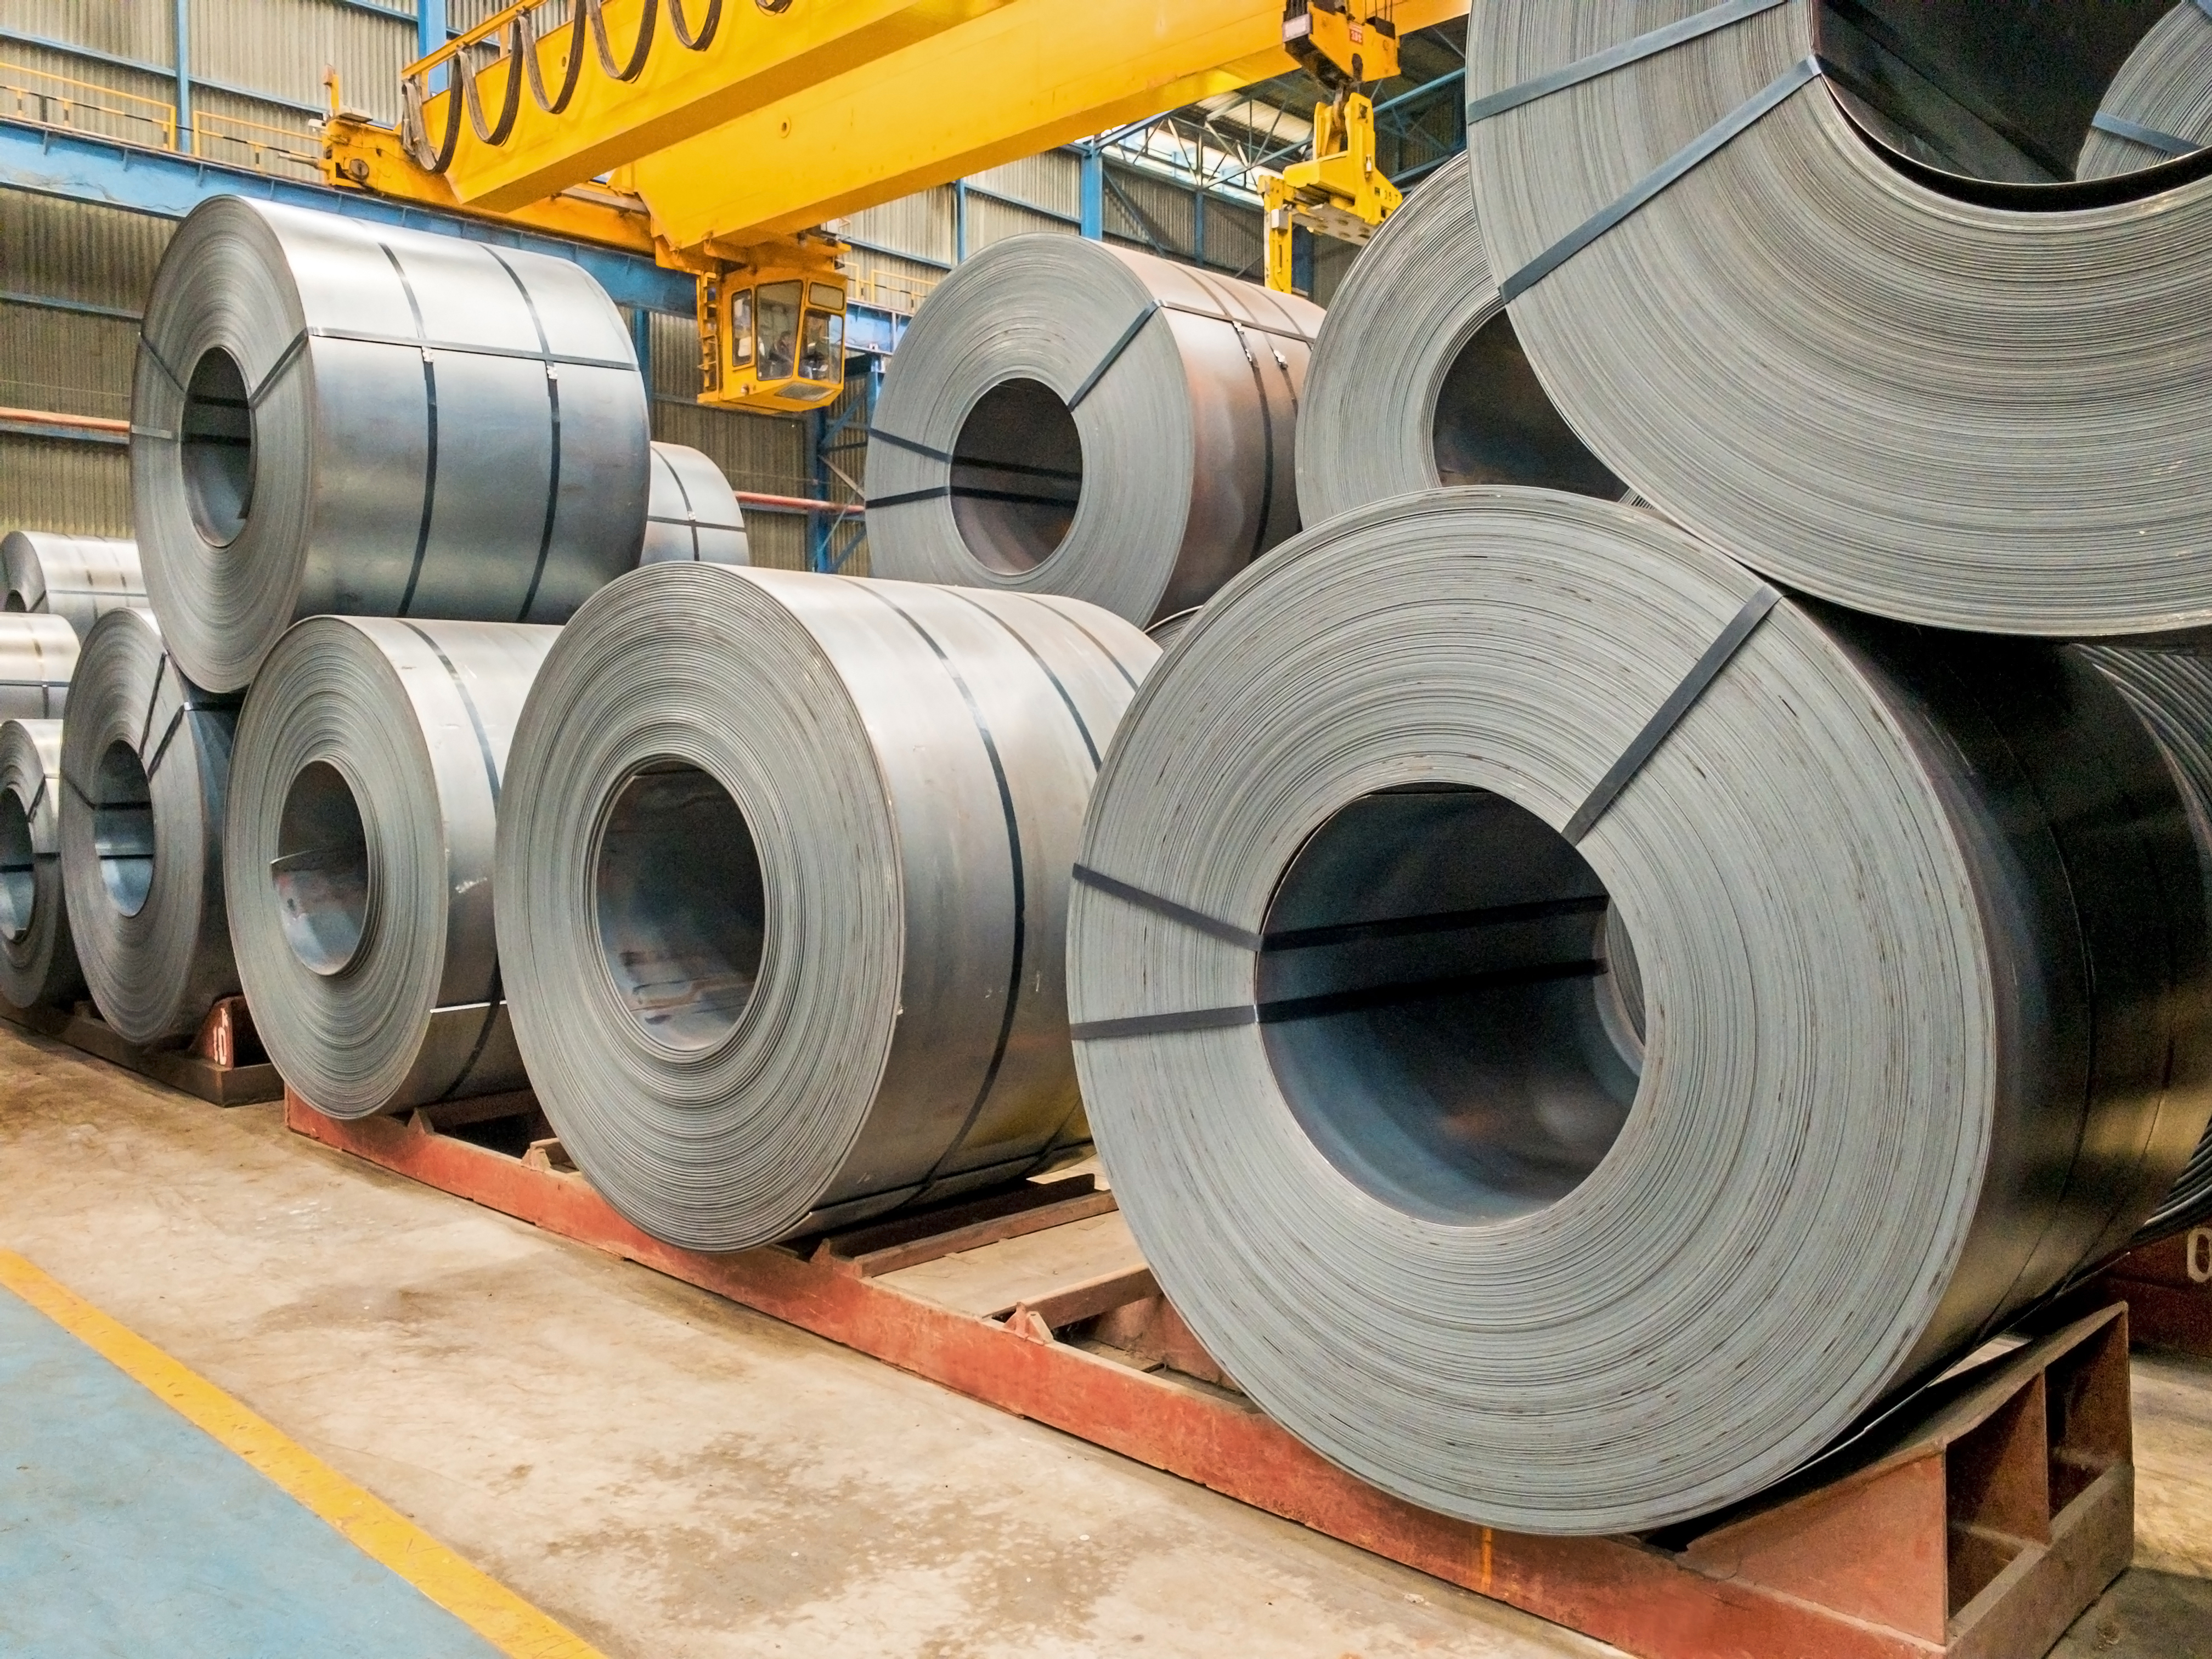 Europe continue price up due to supply/demand - Steel market move.21.04.29